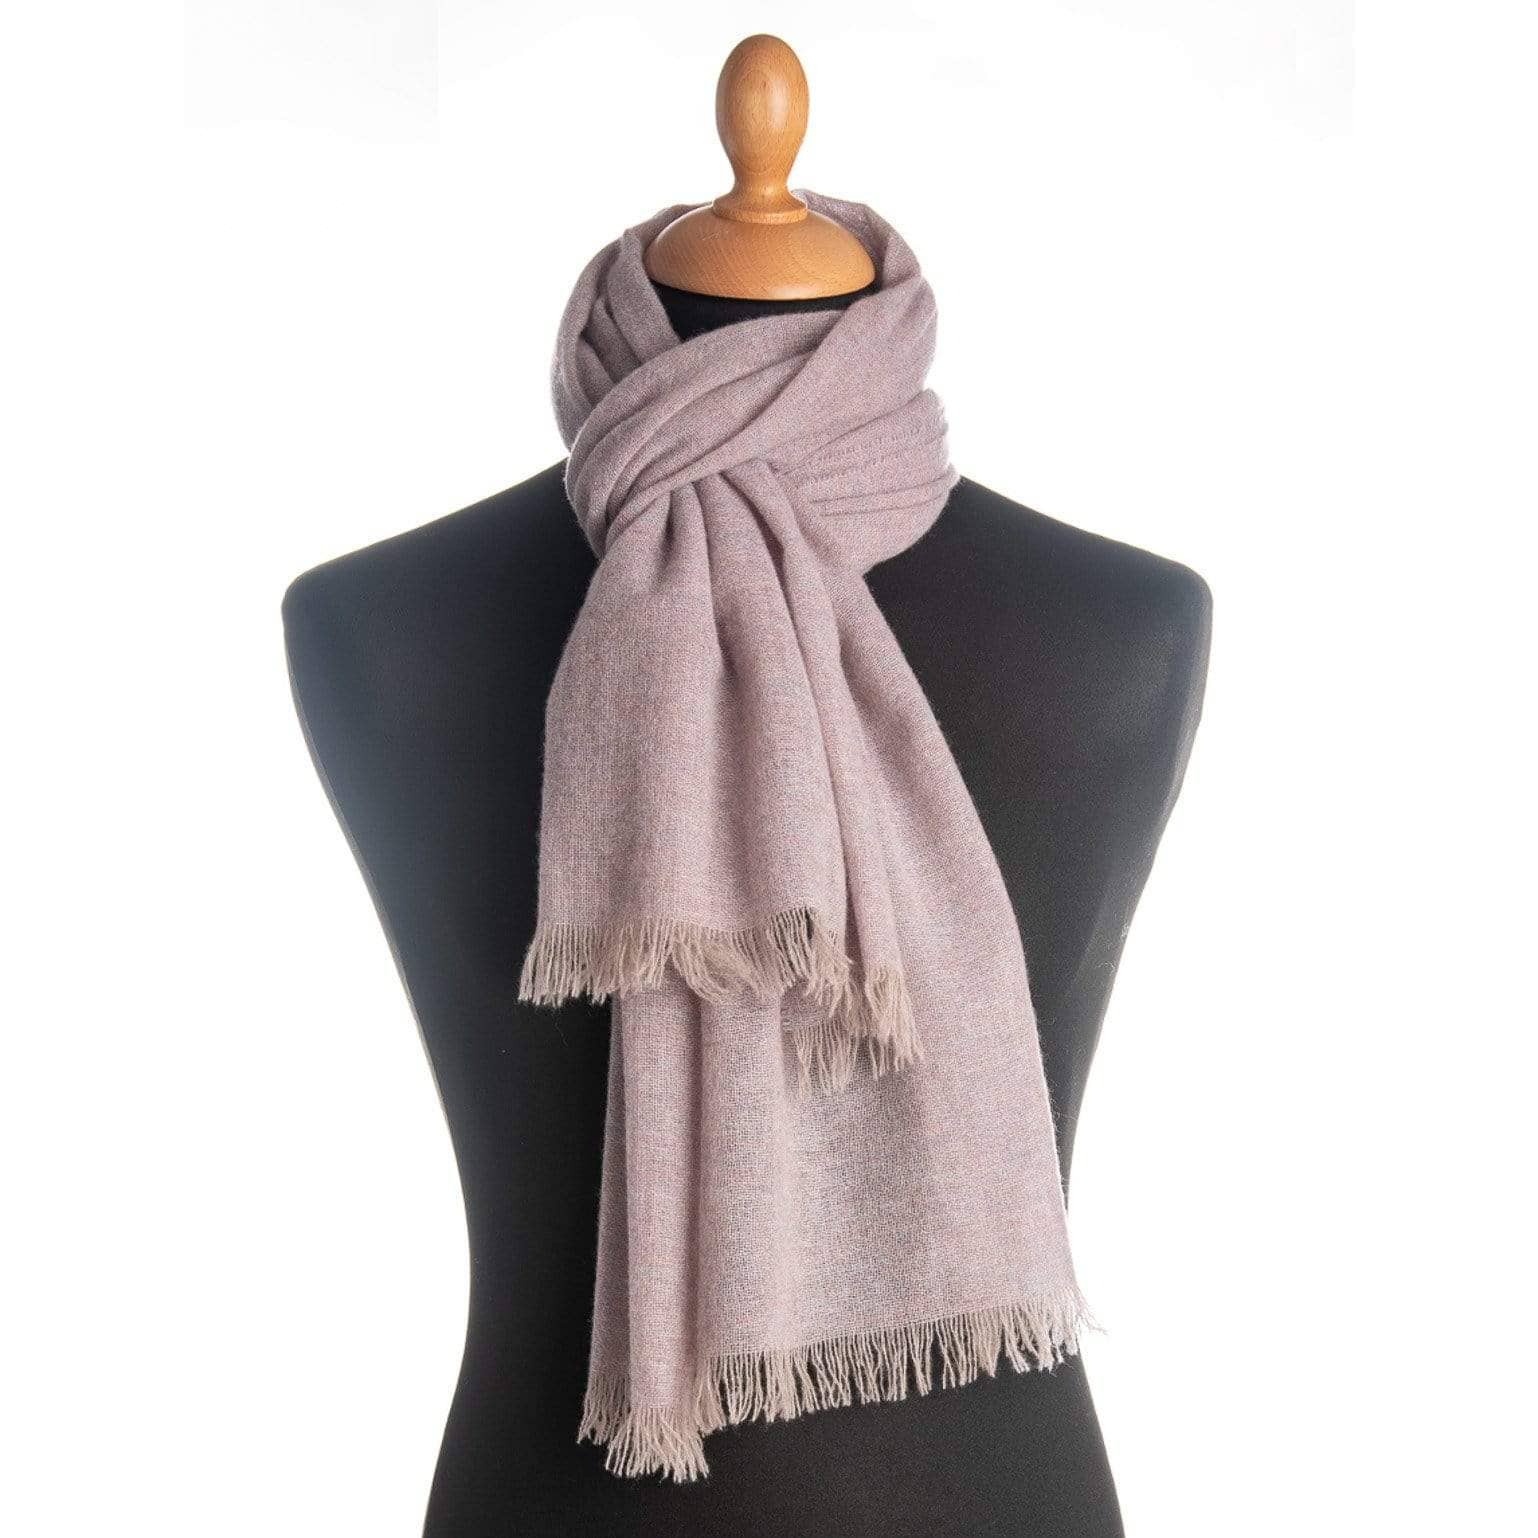 Claudia - Cashmere Scarf Shawl - Heather